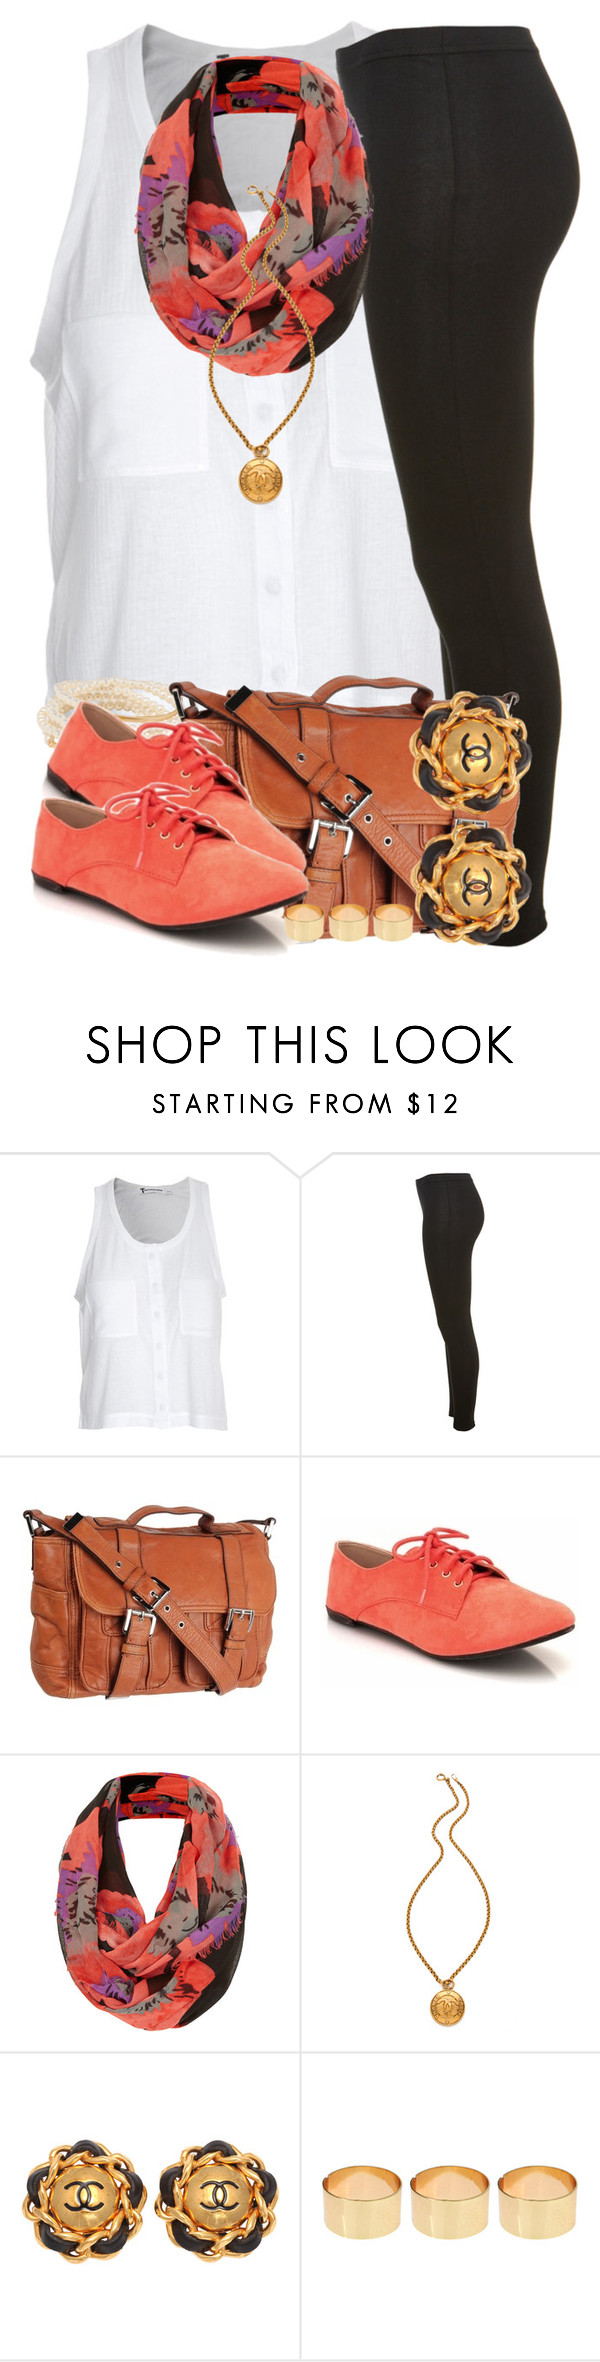 """"""":)"""" by livelifefreelyy ❤ liked on Polyvore featuring Alexander Wang, Miss Selfridge, MICHAEL Michael Kors, Topshop, WGACA, Chanel, ASOS, women's clothing, women and female"""